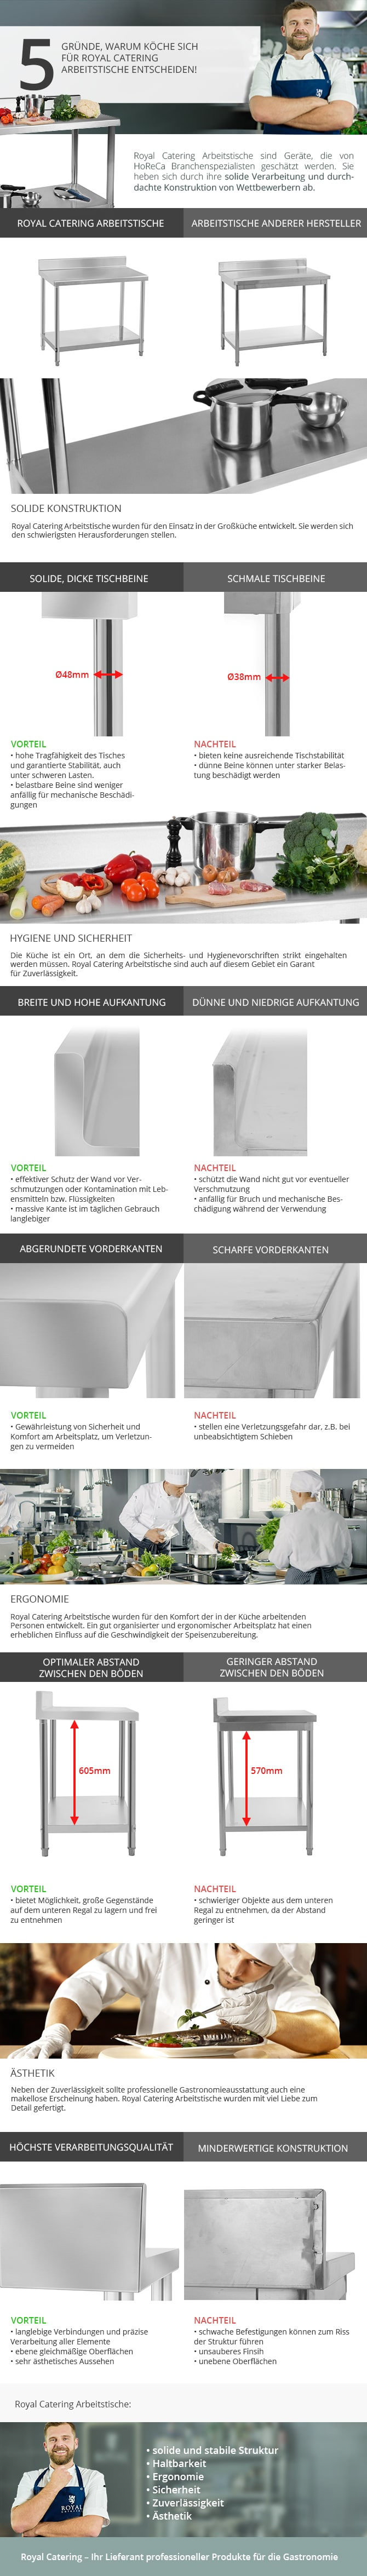 infographic_tables_upstand_comparison_de-min